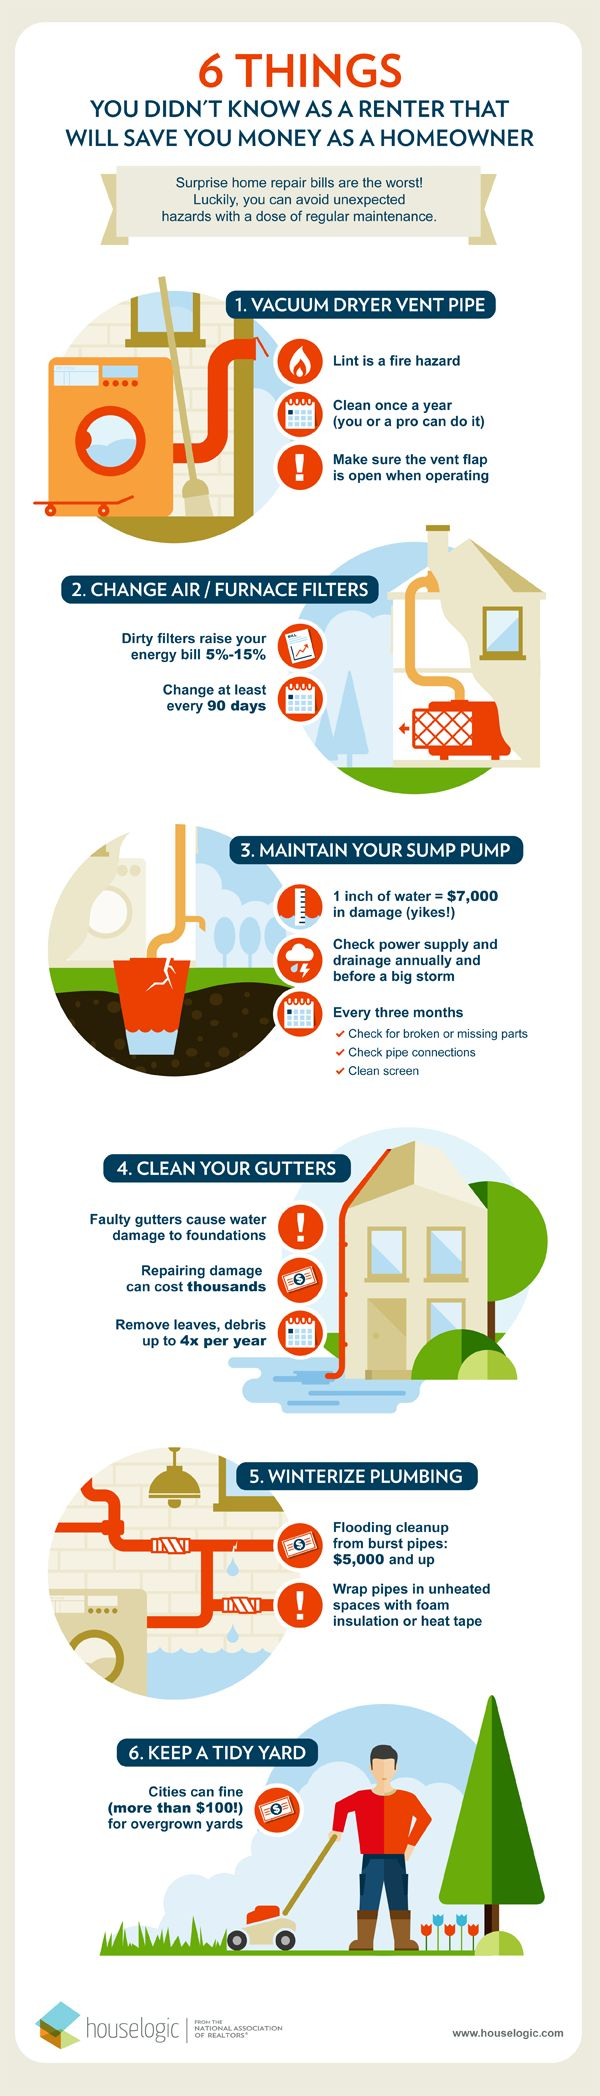 Home maintenance bills can be expensive. Prevent major unexpected costs by completing these six tasks regularly.